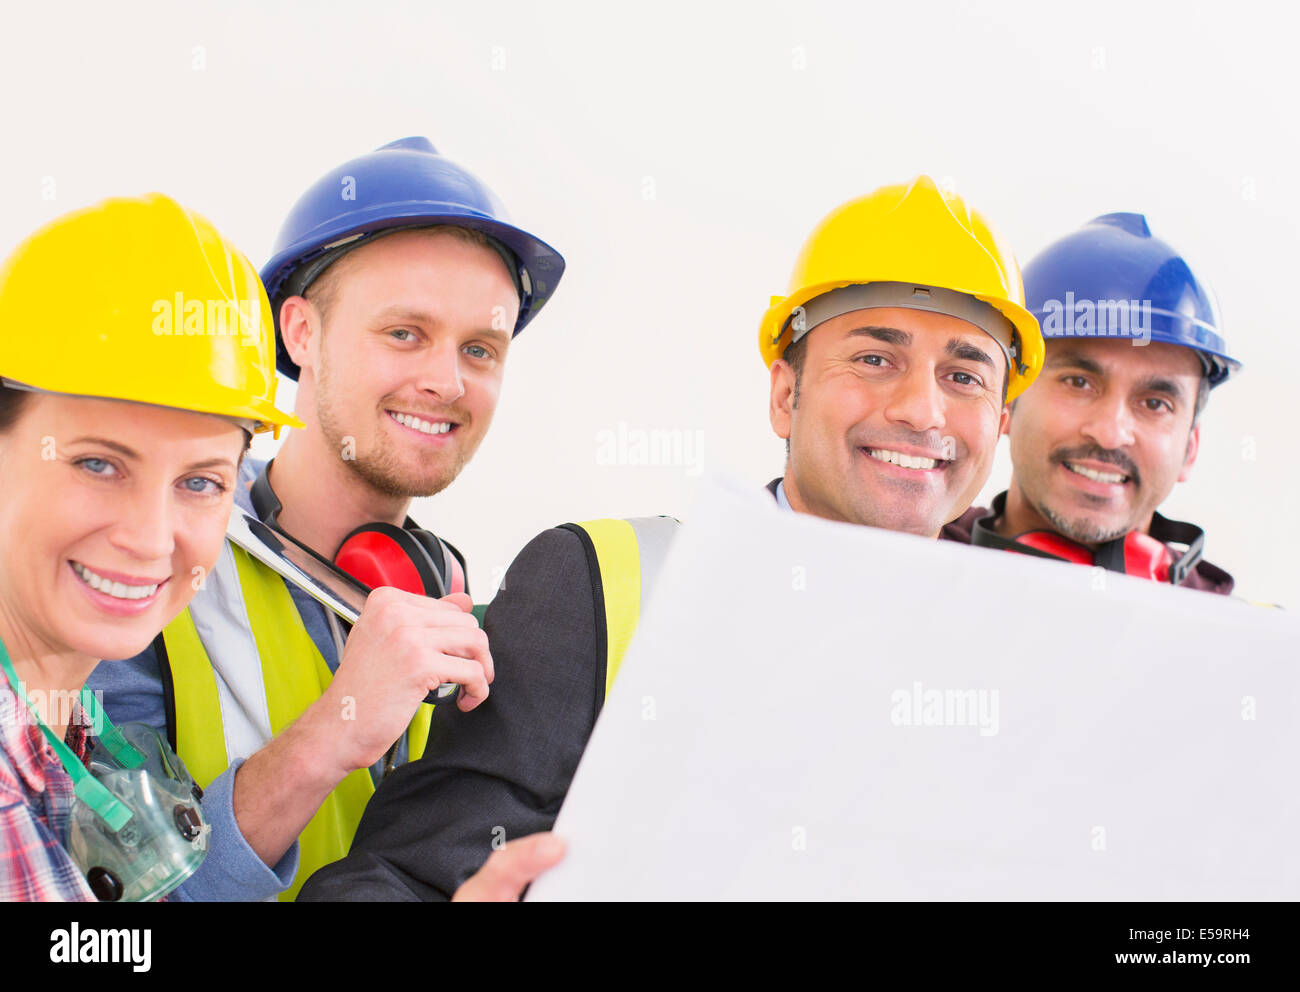 Portrait of confident construction workers - Stock Image